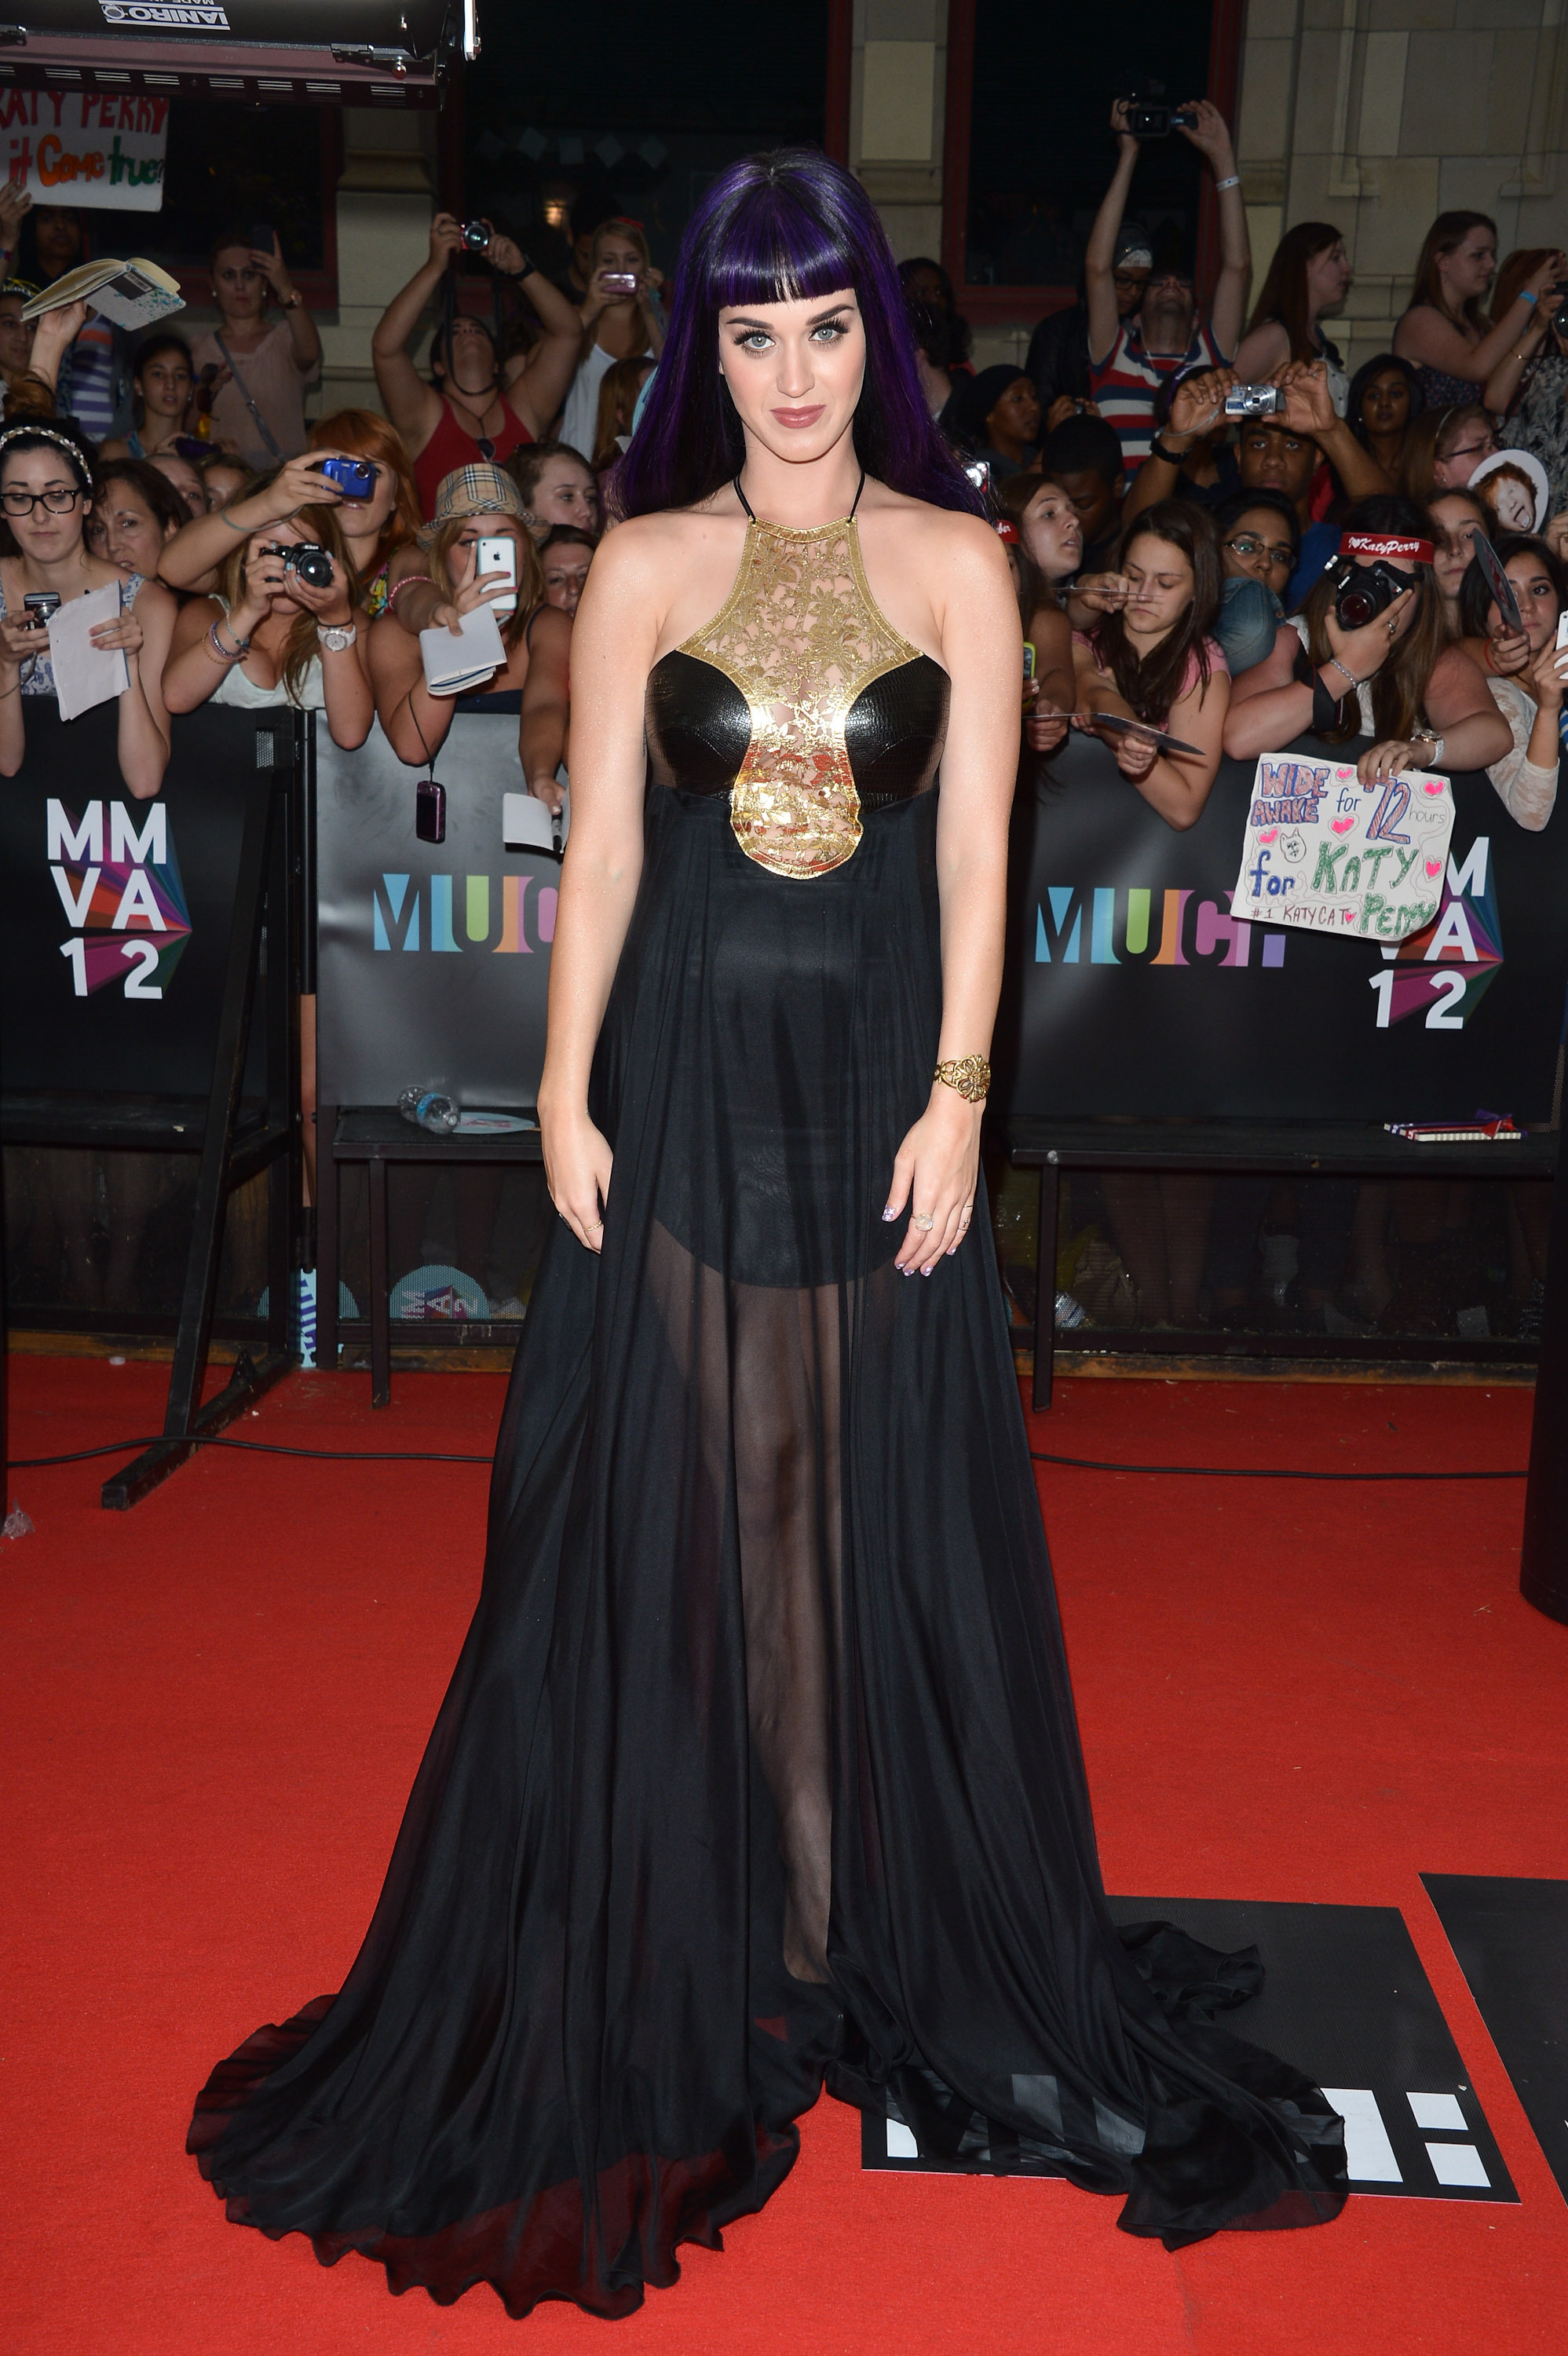 Katy Perry in Vawk at the 2012 MuchMusic Video Awards